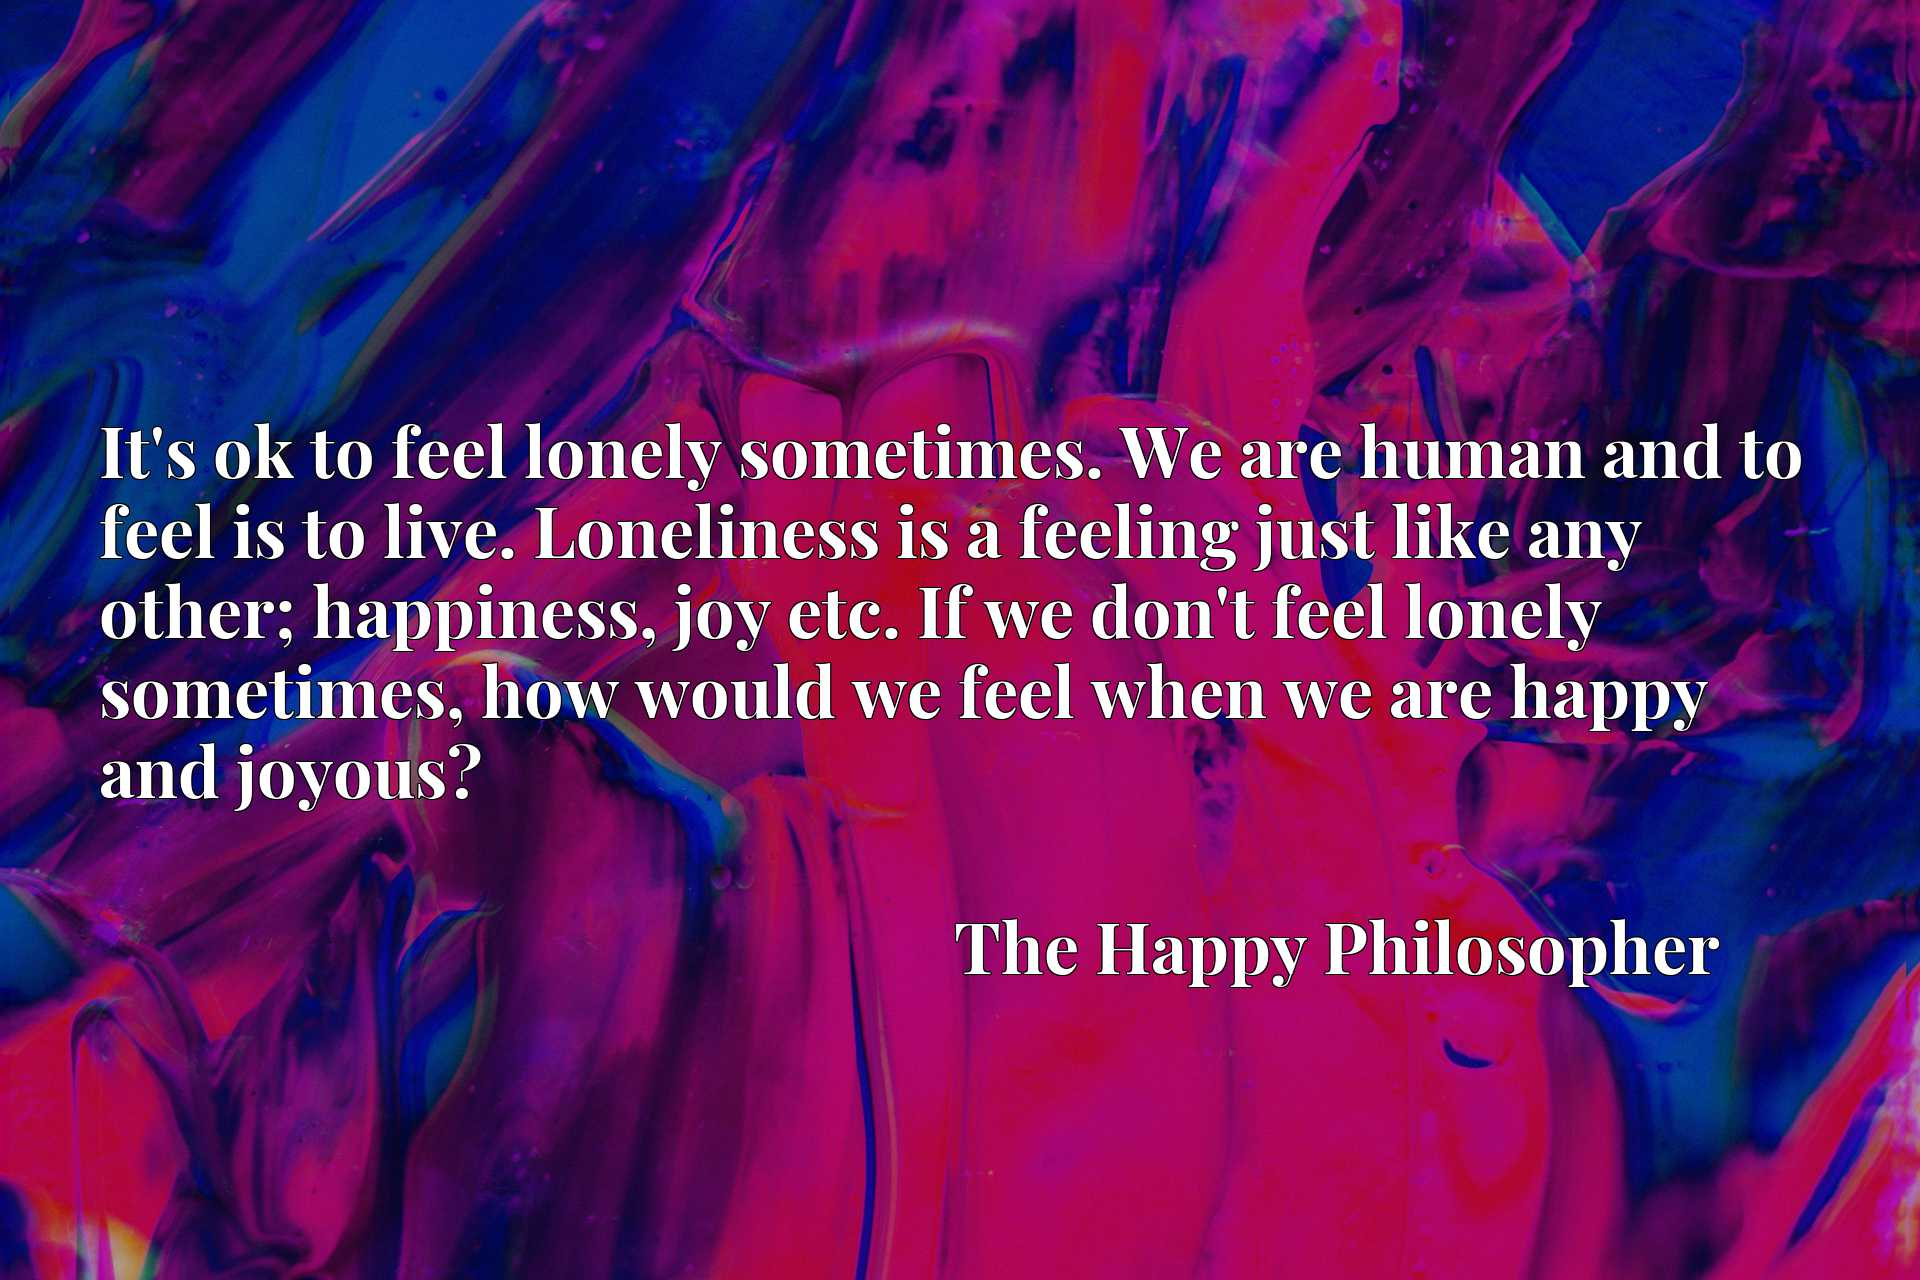 It's ok to feel lonely sometimes. We are human and to feel is to live. Loneliness is a feeling just like any other; happiness, joy etc. If we don't feel lonely sometimes, how would we feel when we are happy and joyous?